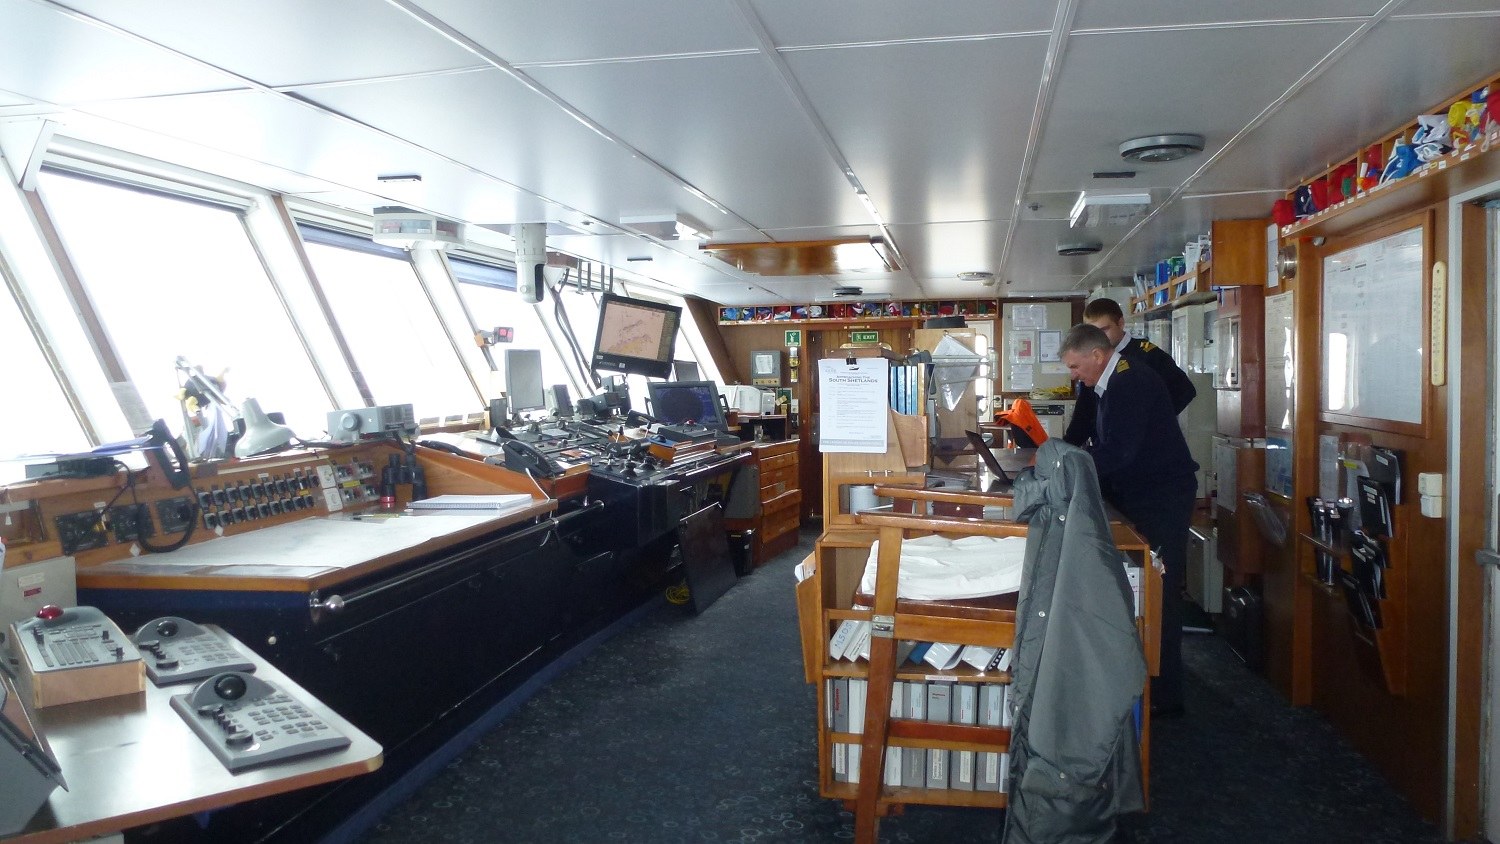 The Ships Navigation Room